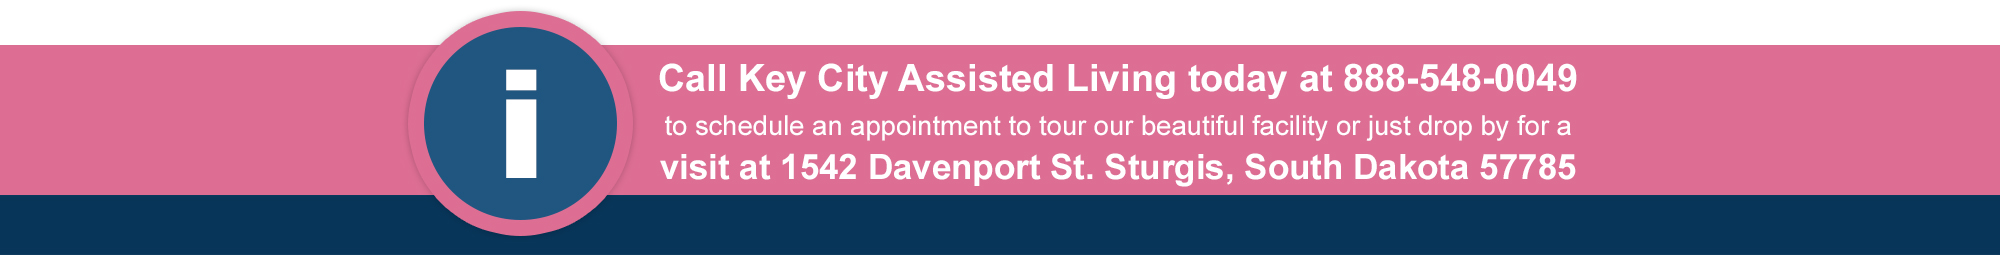 Sturgis' Key City Assisted Living - South Dakota - retirement community - residential care - location address - testimonial - 1542 Davenport Street Sturgis South Dakota zip 57785 phone 888-548-0049